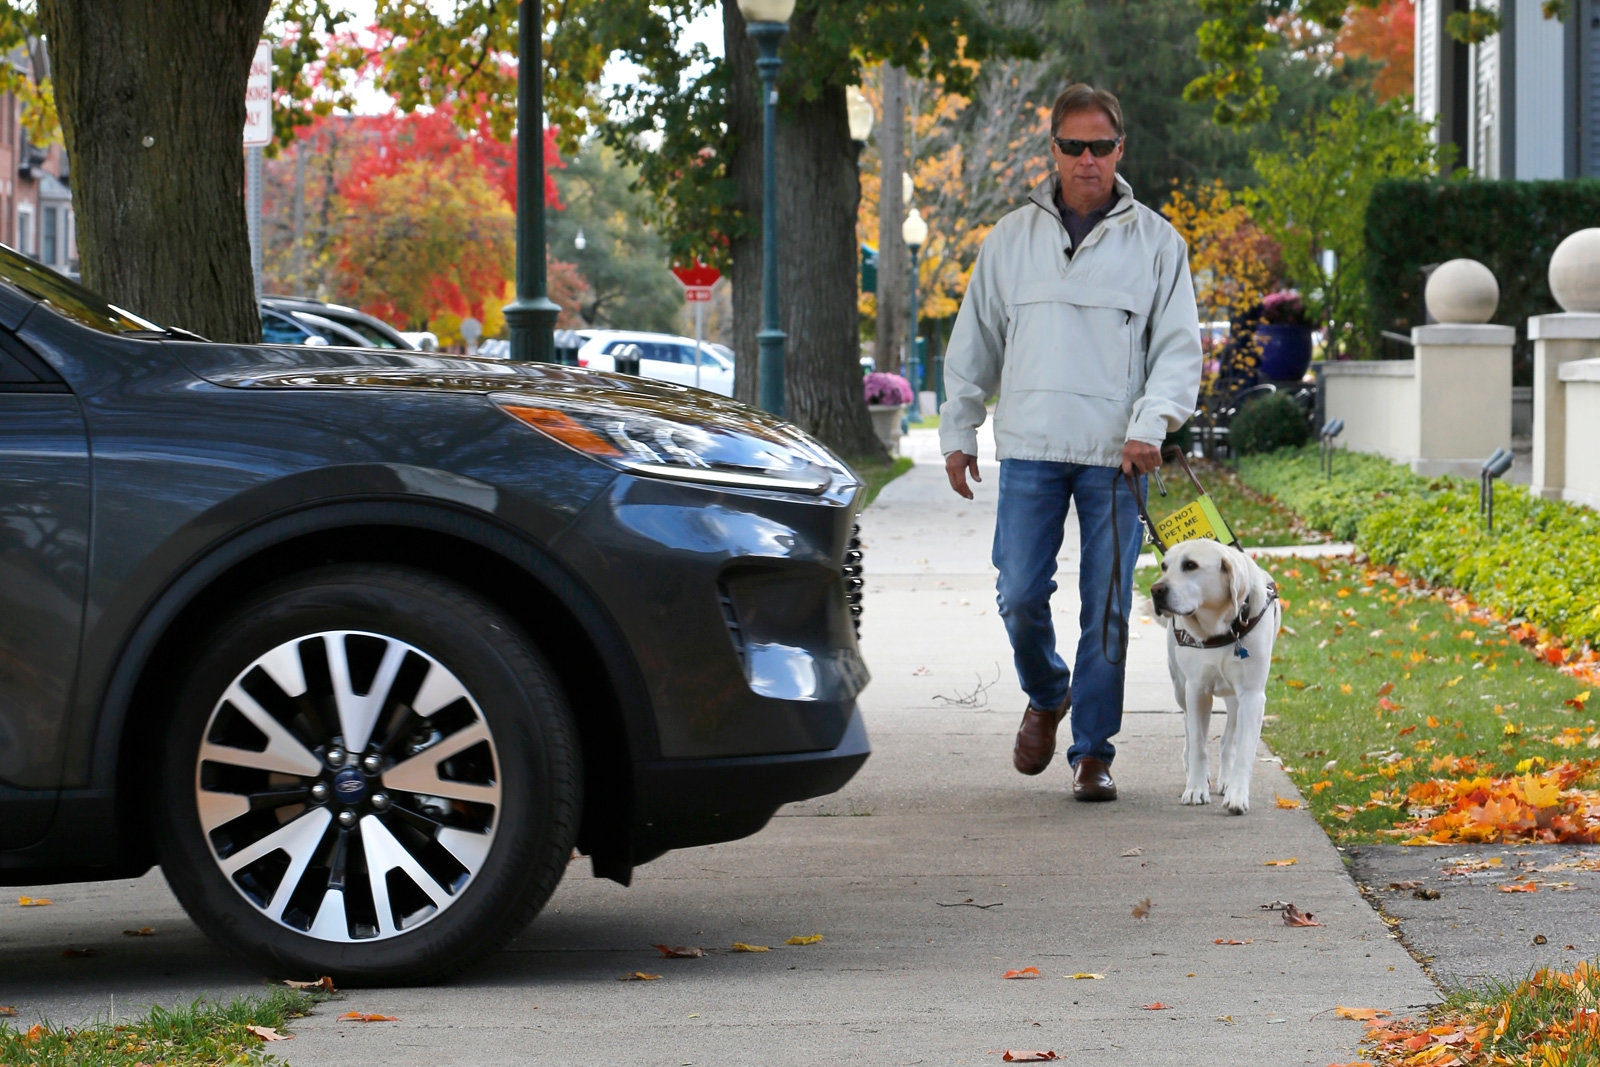 This 'O-29' hum is the sound of Ford's new hybrid SUVs | DeviceDaily.com